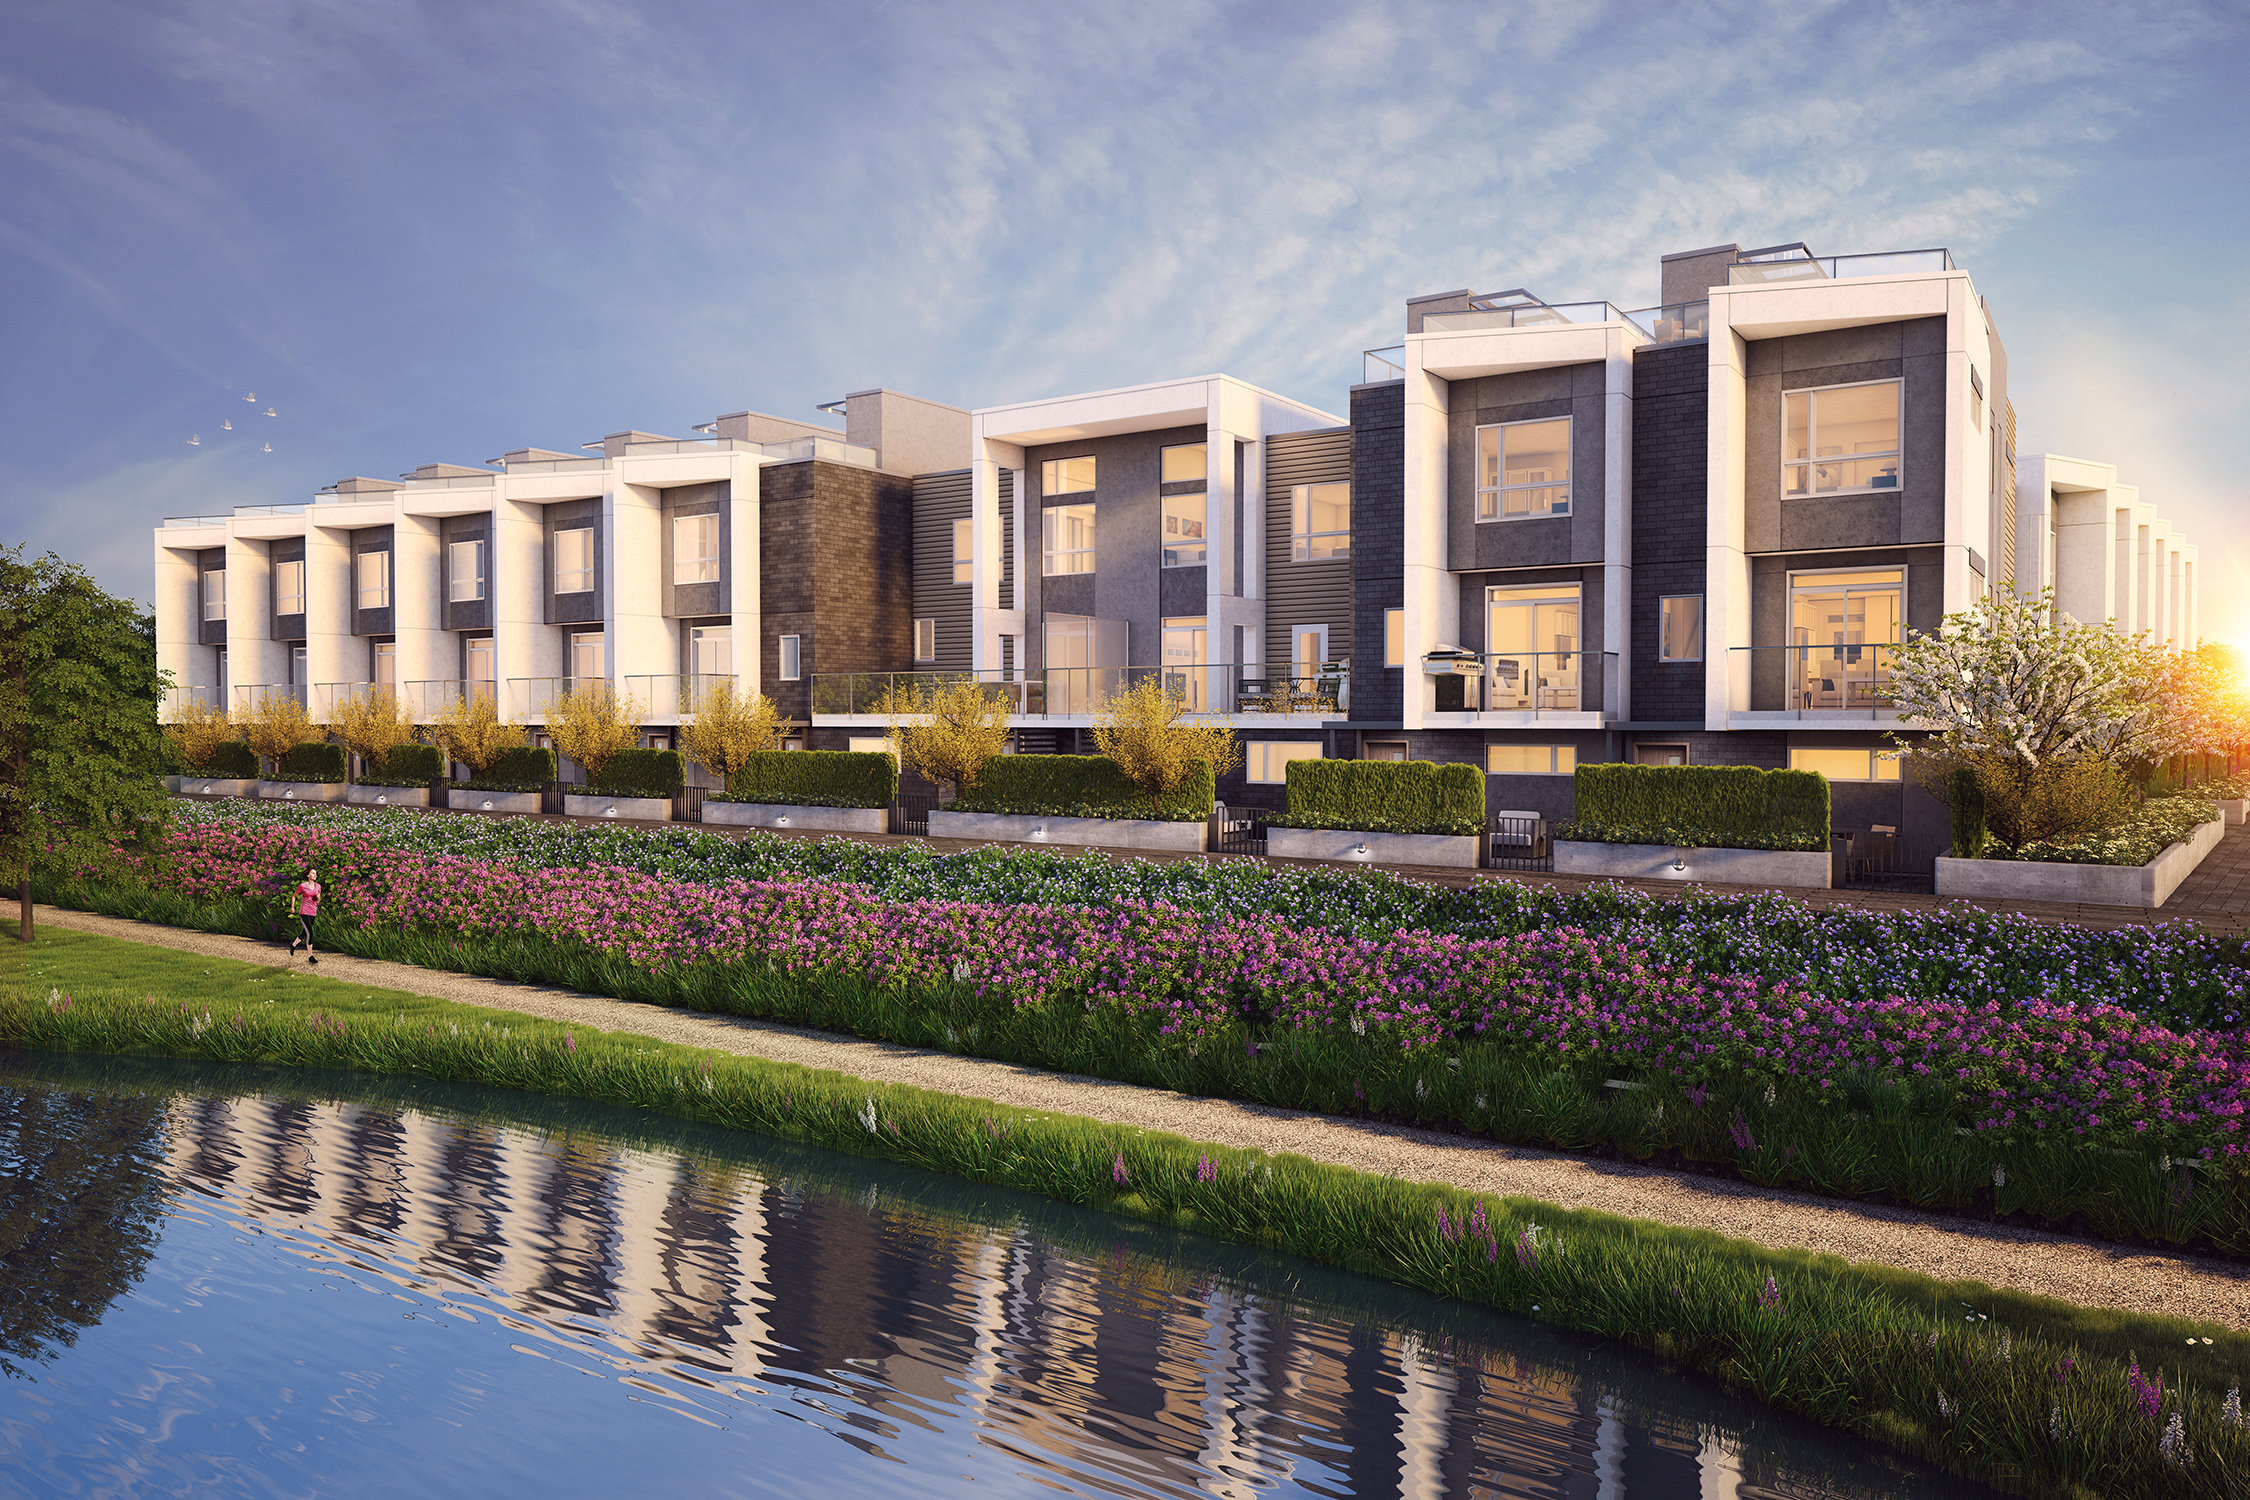 Artist rendering of Jasmine at The Gardens Richmond townhouses.